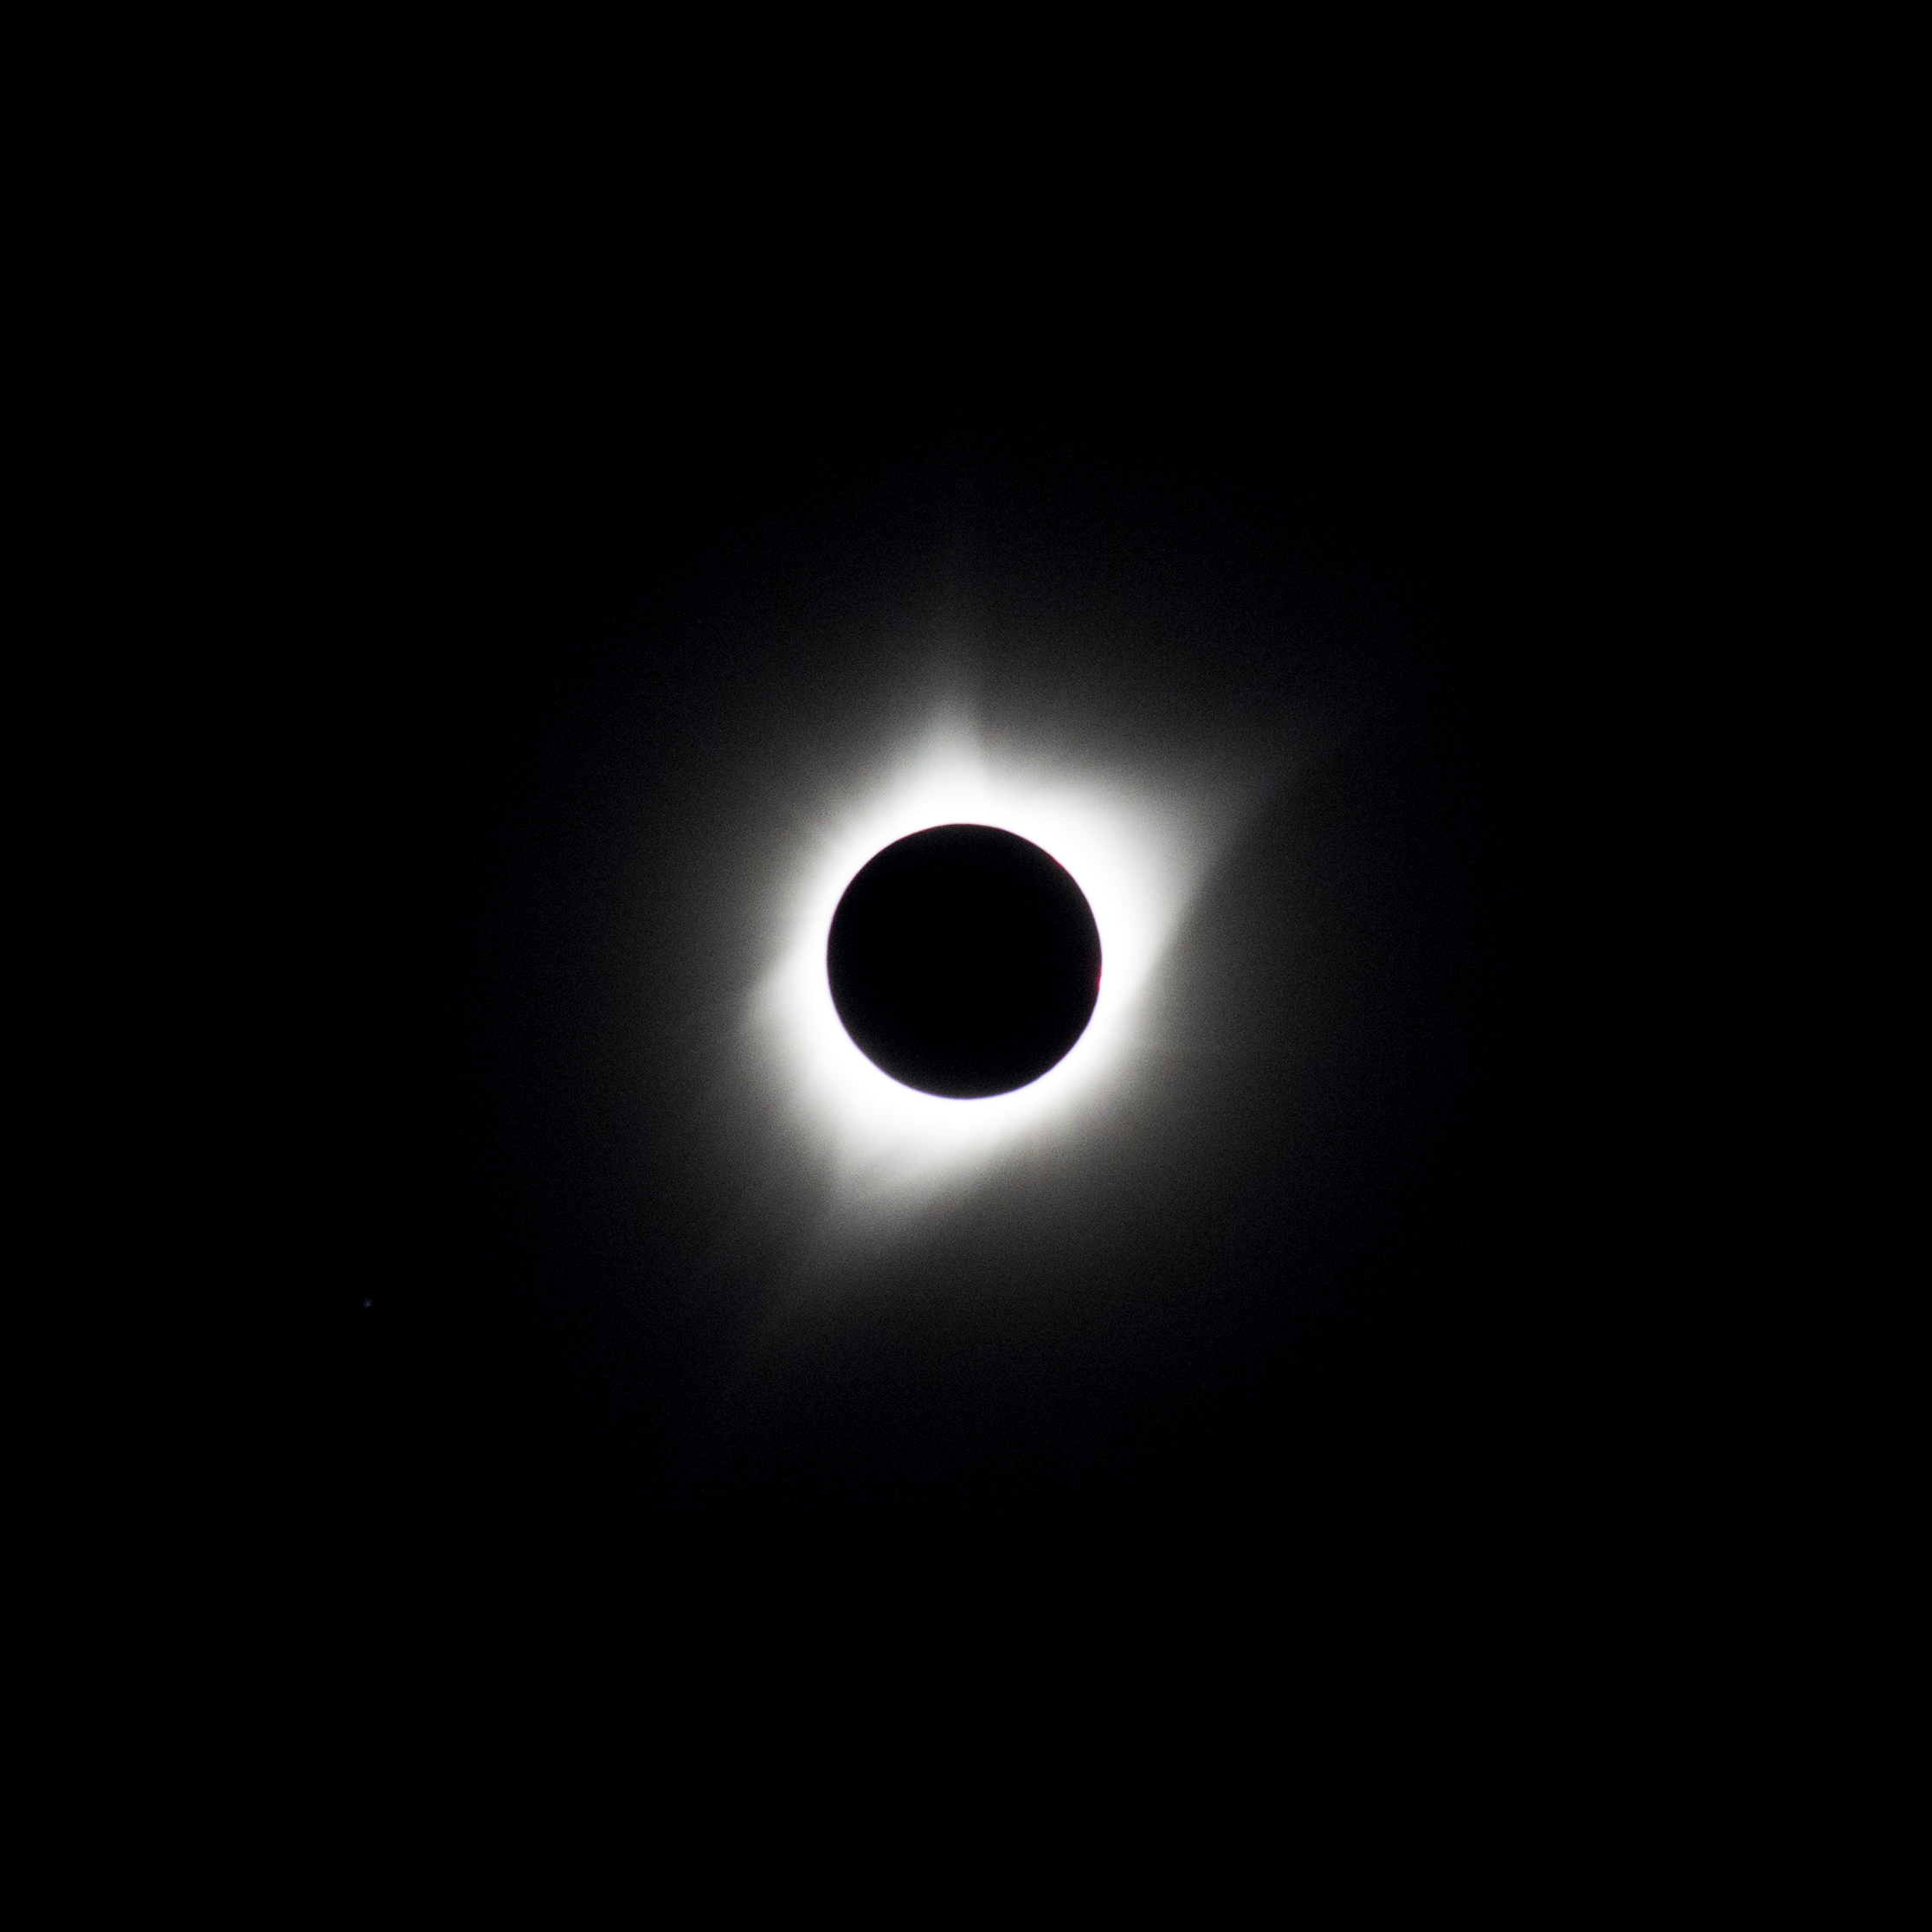 I captured this photograph of yesterday's solar eclipse from the zone of totality in Casper, Wyoming. We had an almost surreal two and a half minutes with this view as the moon passed between us and the sun. Being here during this event showed me, perhaps more so than ever before, that we are connected to and captivated by the cosmos.  A sincere thank you to the team at Camp Casper: Casper, Under Canvas, and Outdoor Voices - for the perfect viewing spot.